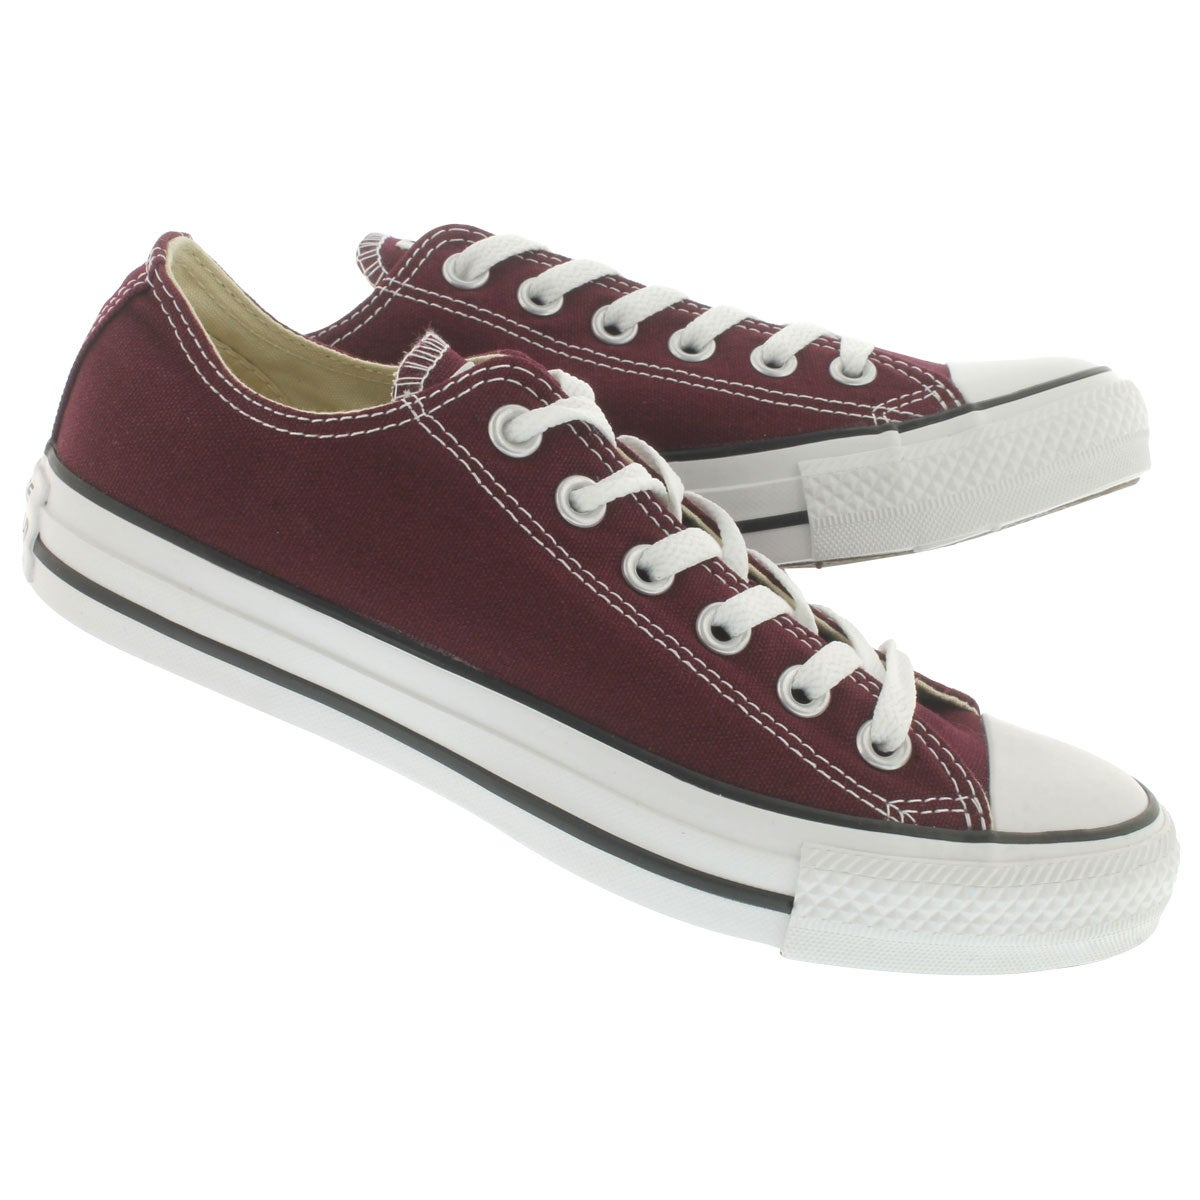 Lds CT All Star Core burgundy sneaker